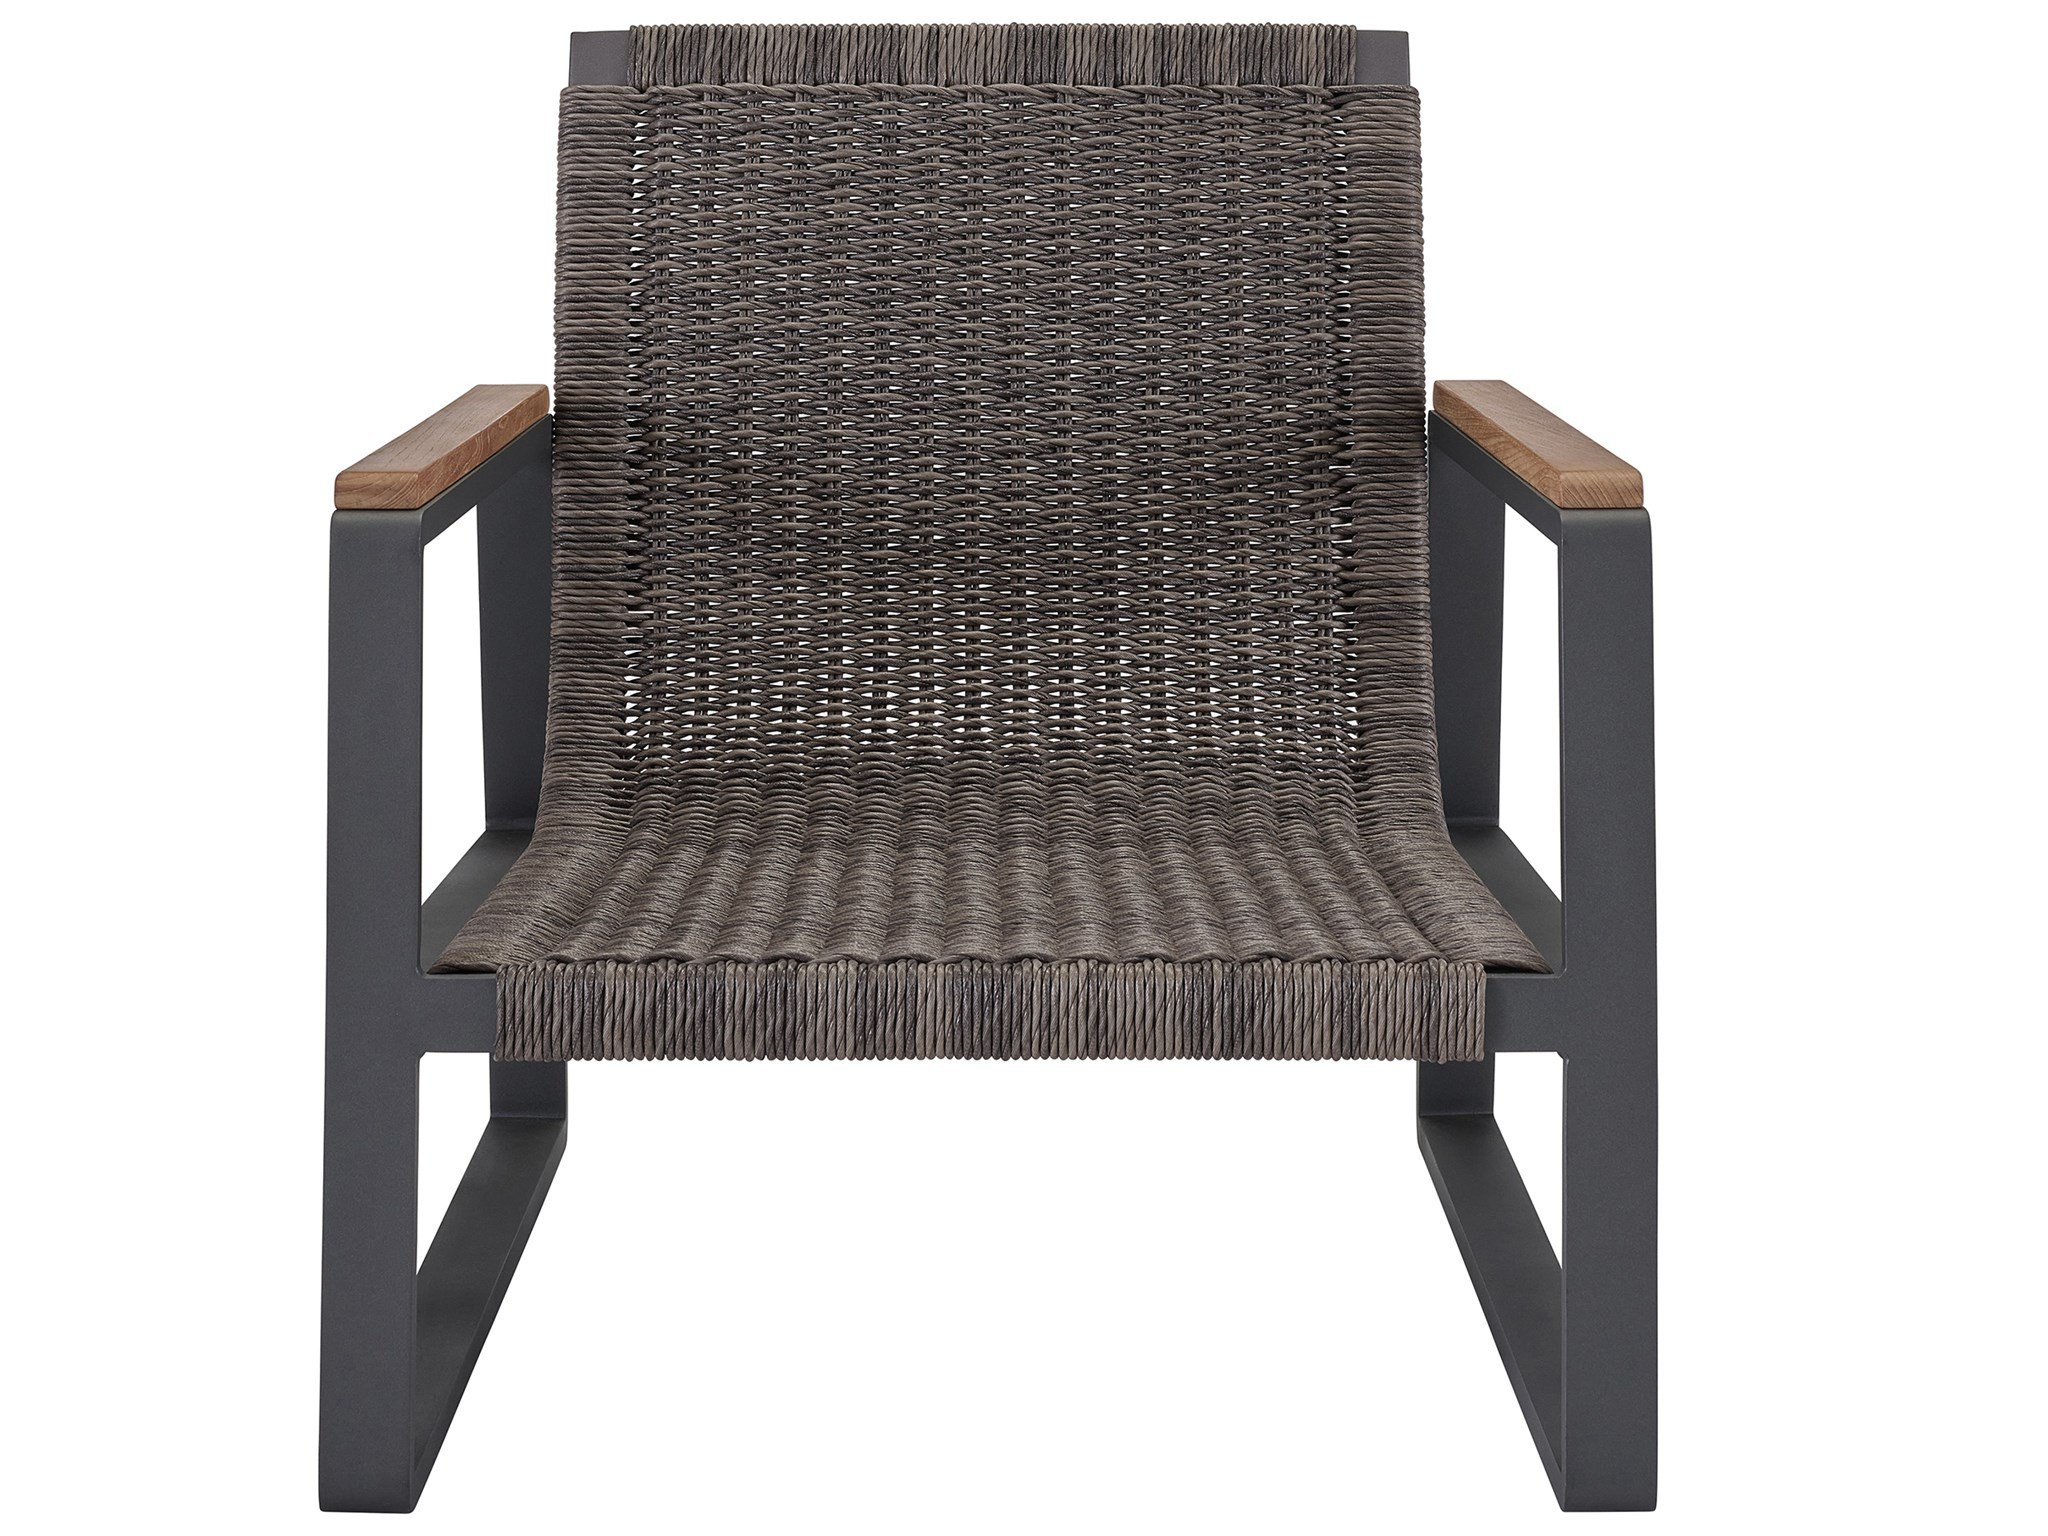 San Clemente Lounge Chair